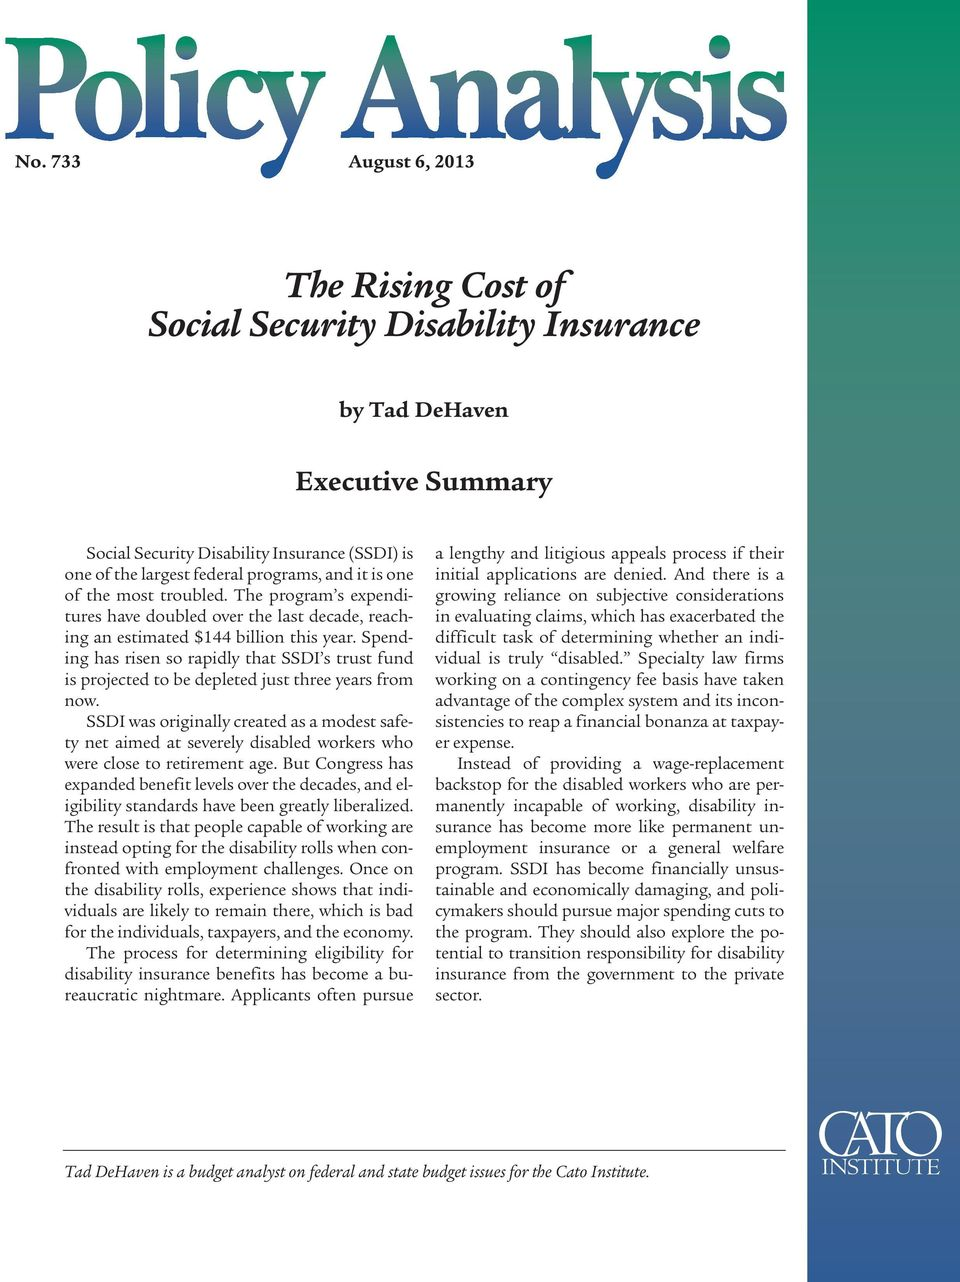 Spending has risen so rapidly that SSDI s trust fund is projected to be depleted just three years from now.